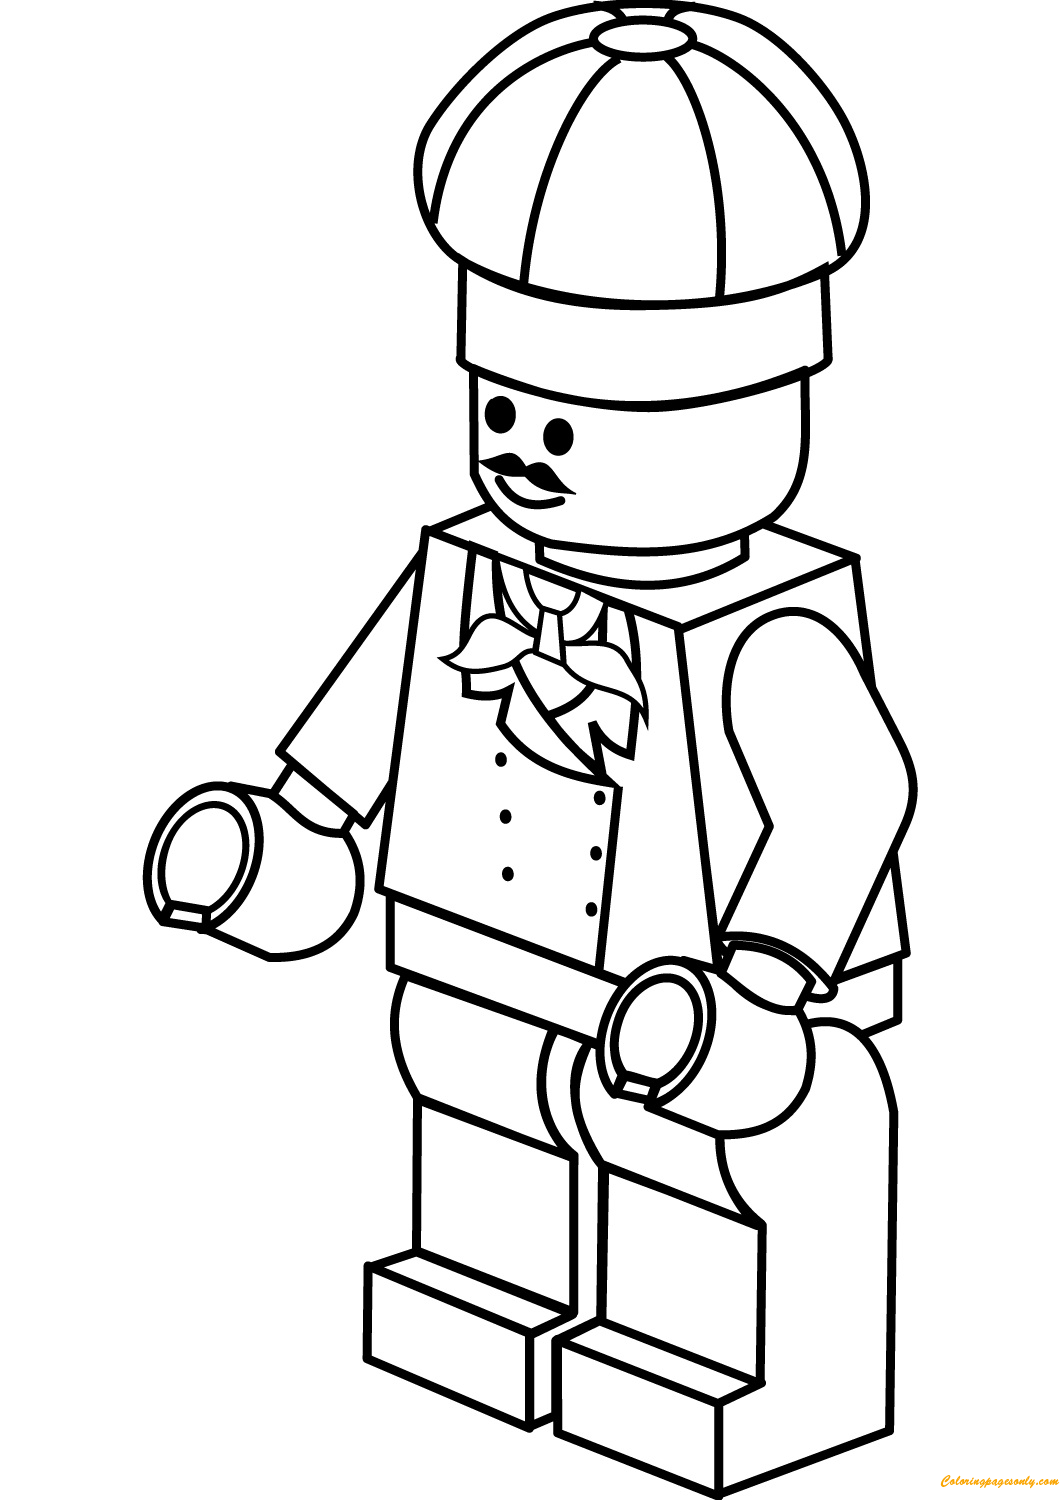 Boston chefs valentines day printable coloring pages ~ Lego City Chef Coloring Page - Free Coloring Pages Online